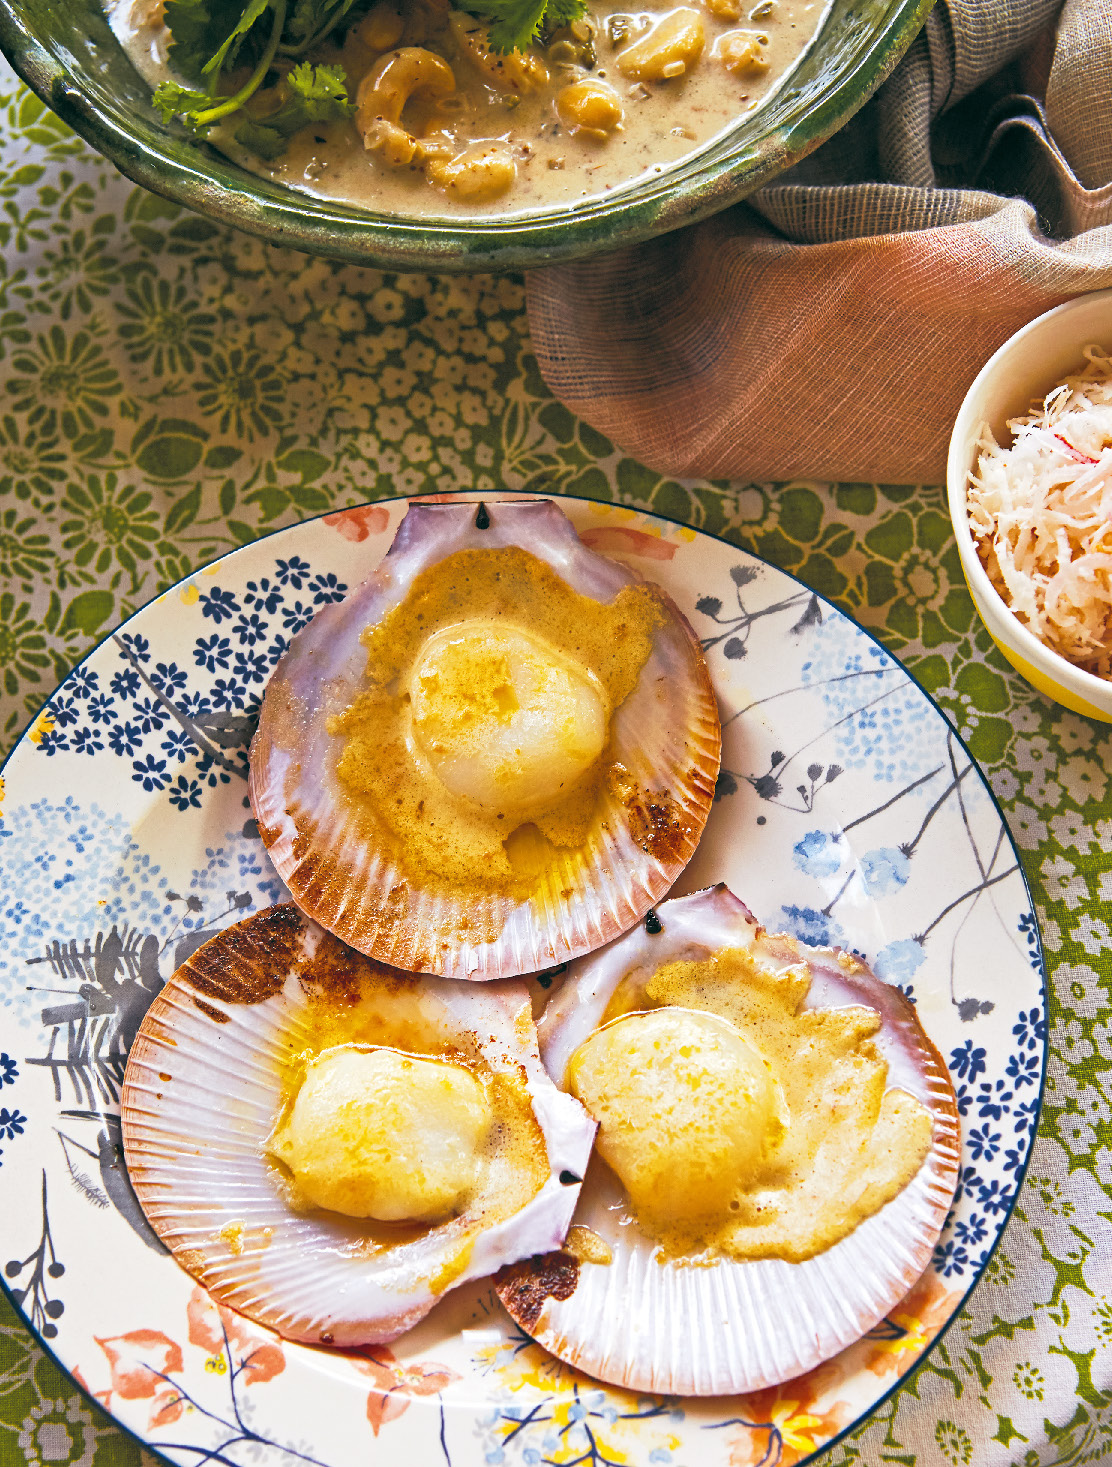 Scallops with miso butter